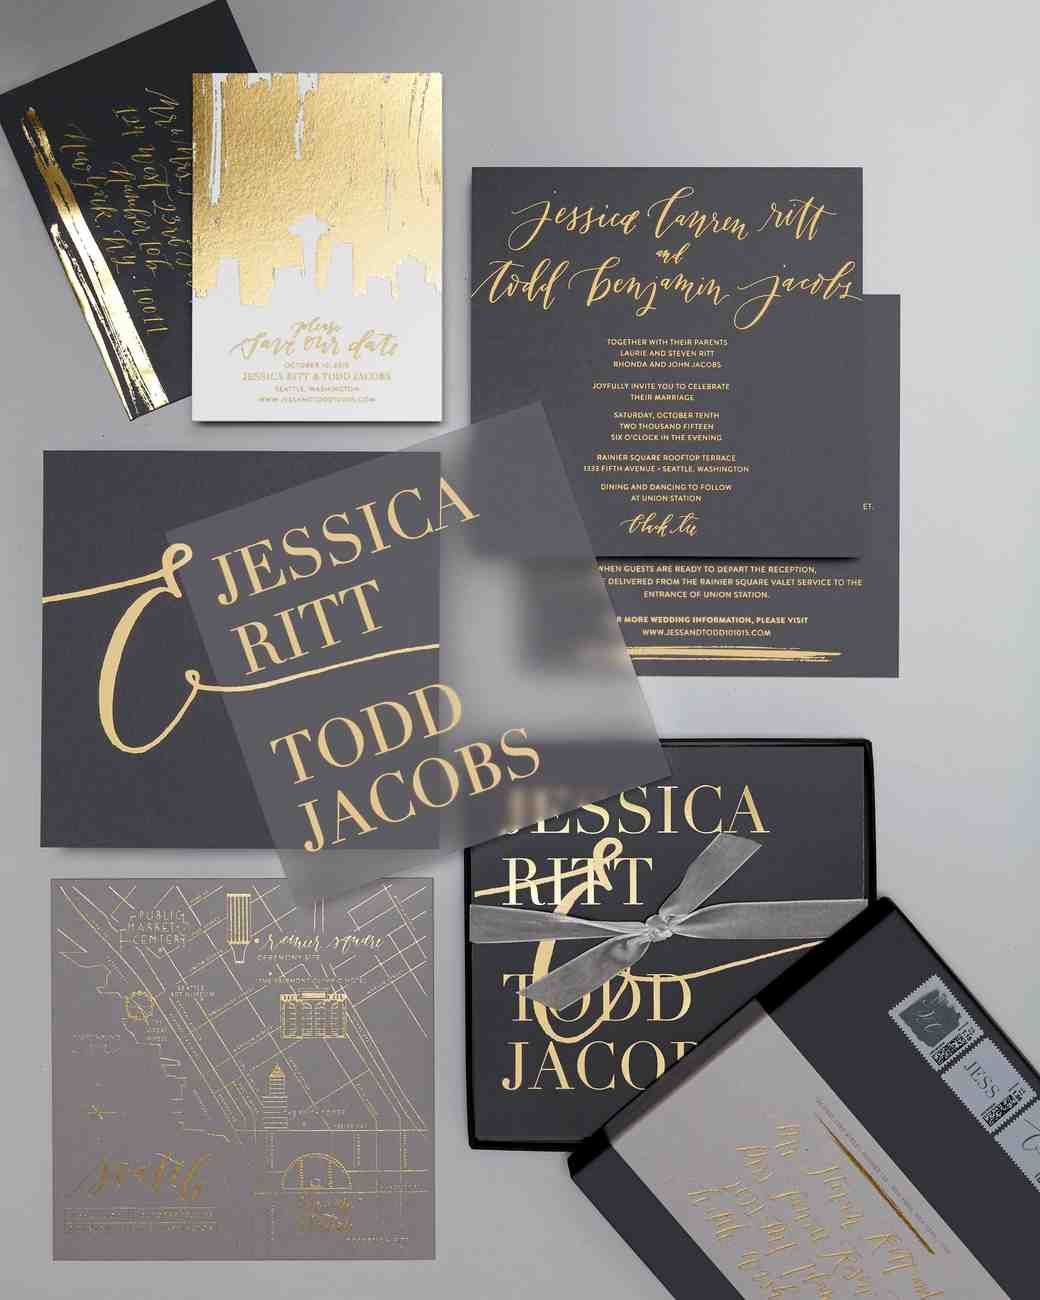 how to address couples on wedding invitations%0A Original Pin Caption  After toying with the   out of left field   idea of  leather invitations  the couple chose triplethick custom card stock  stamped with